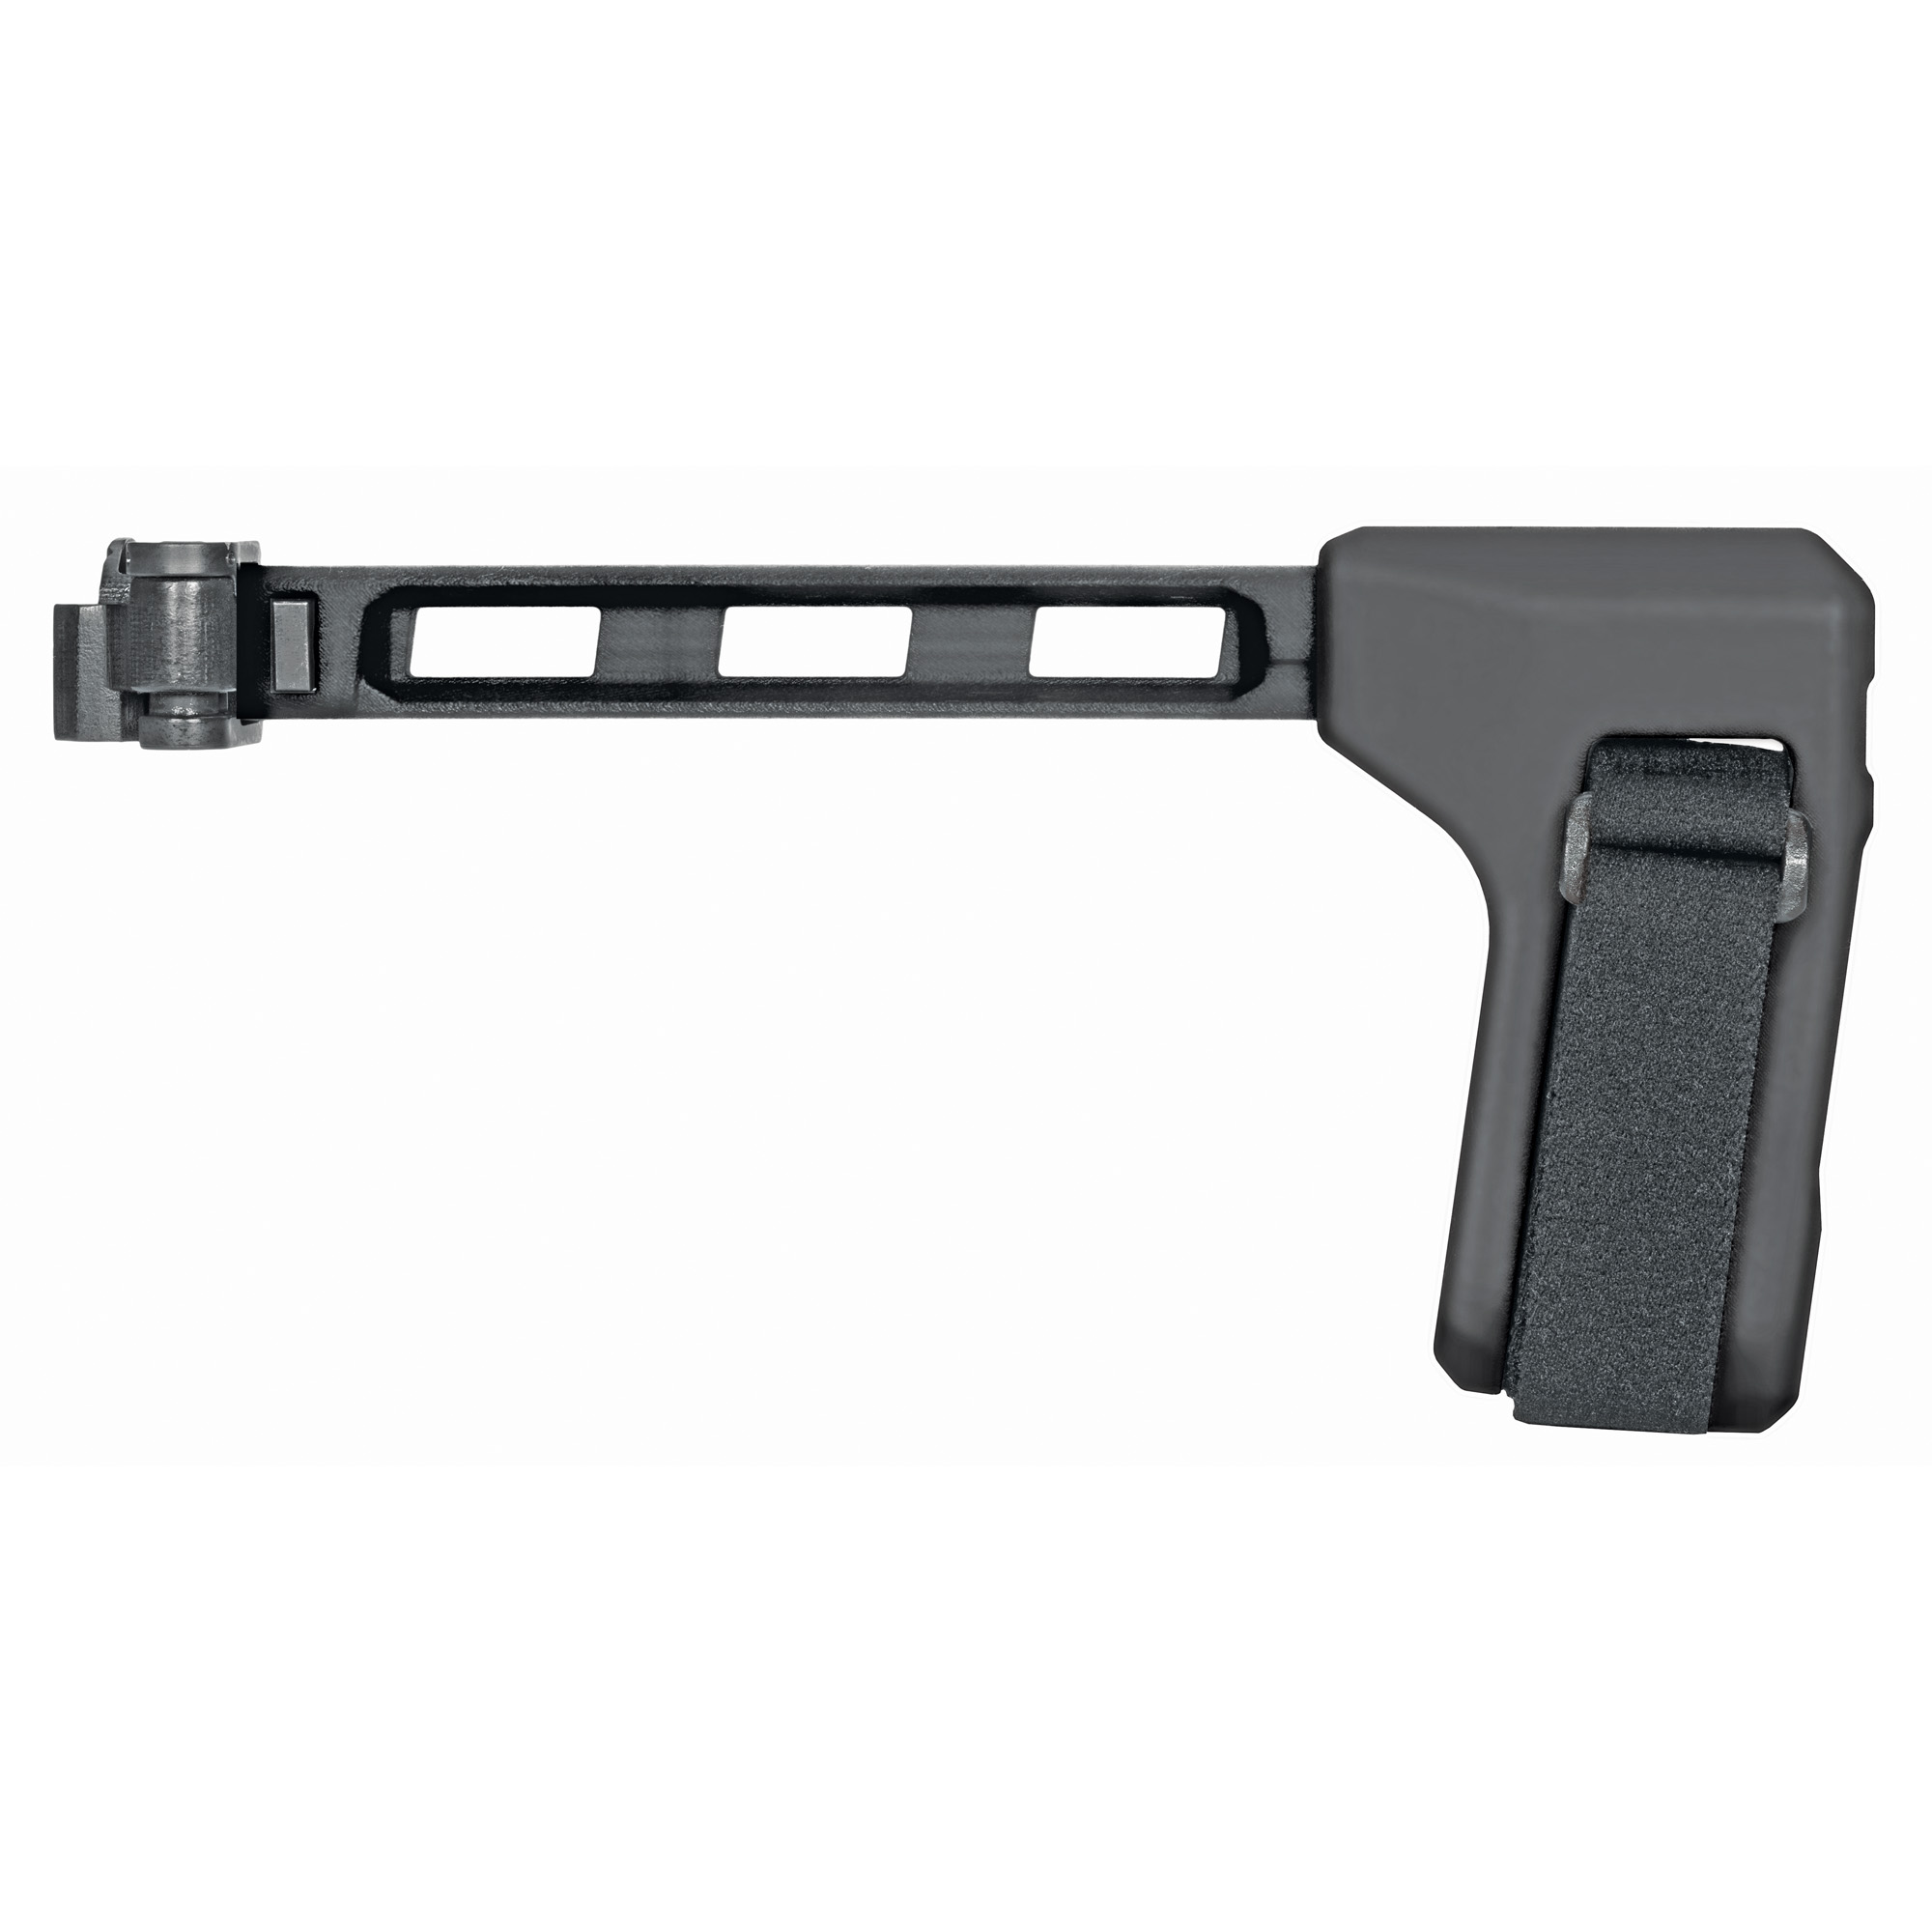 """A low-profile"""" left side-folding"""" strut design compatible with all platforms utilizing an M1913 interface at the rear of the receiver. The FS1913(TM) is a complete assembly offering pull-through opening and a solid lock-up when extended. Comes with adjustable nylon strap."""